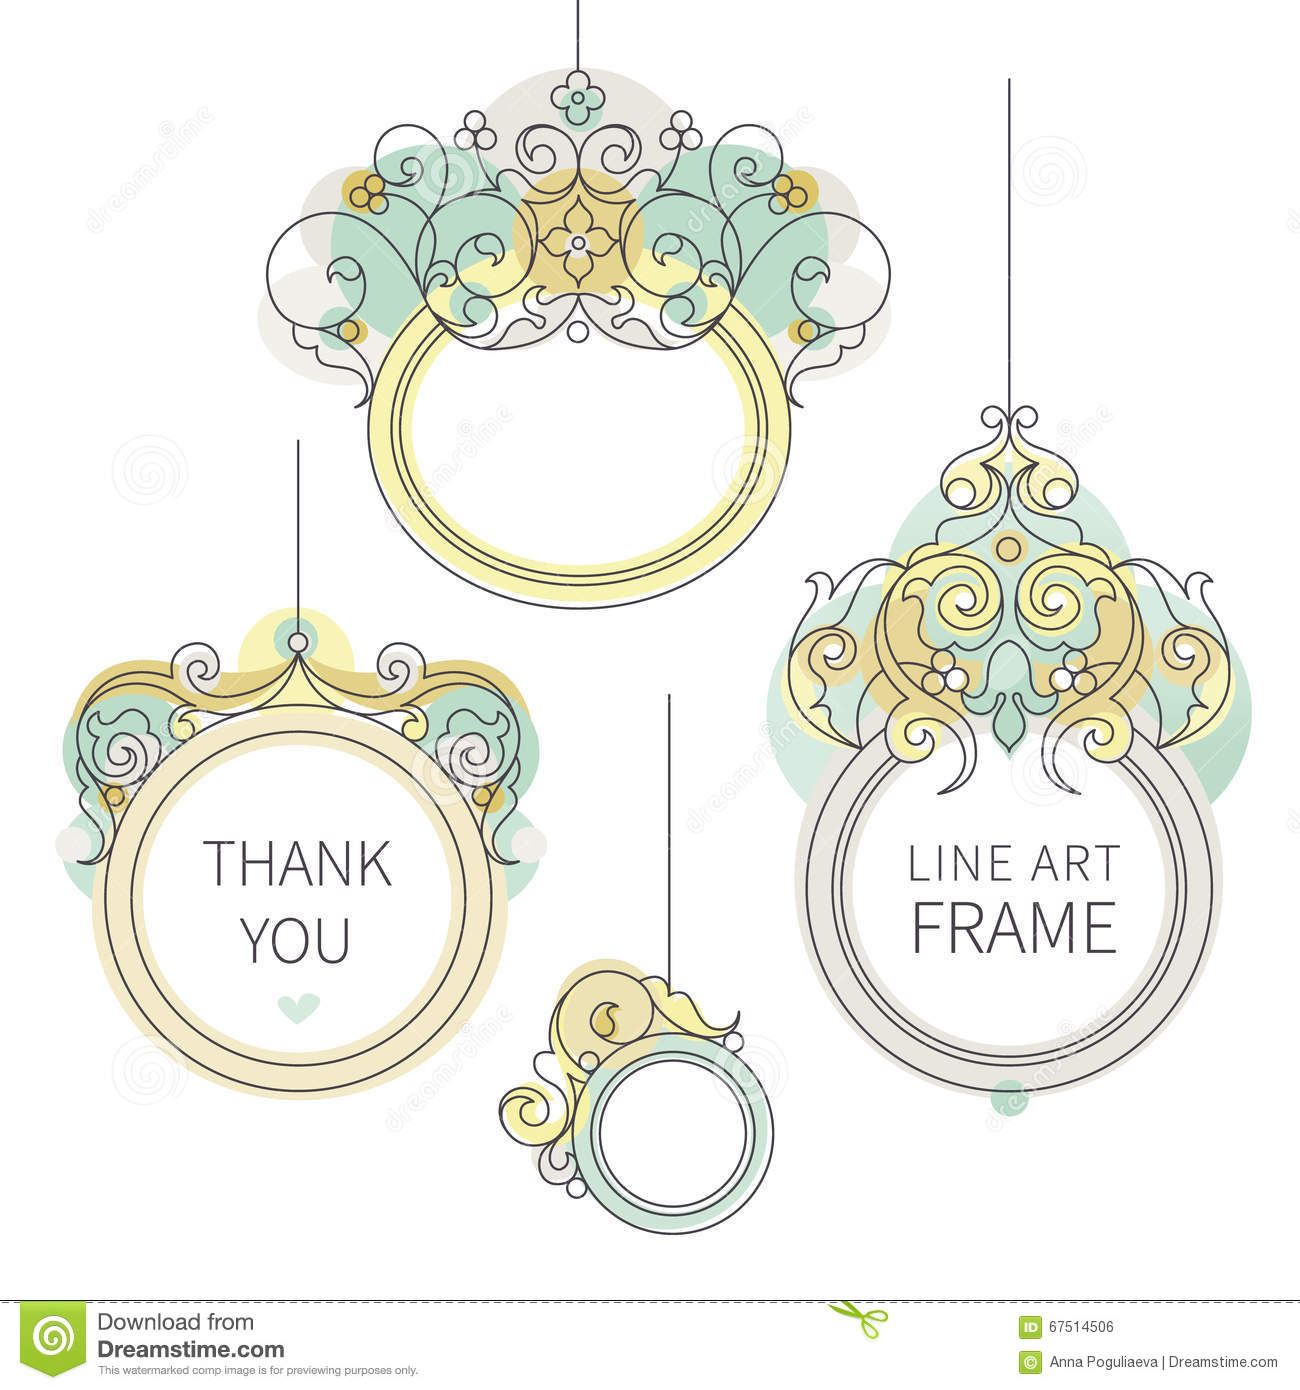 Frame Design Line Art : Vector line art frame for design template stock